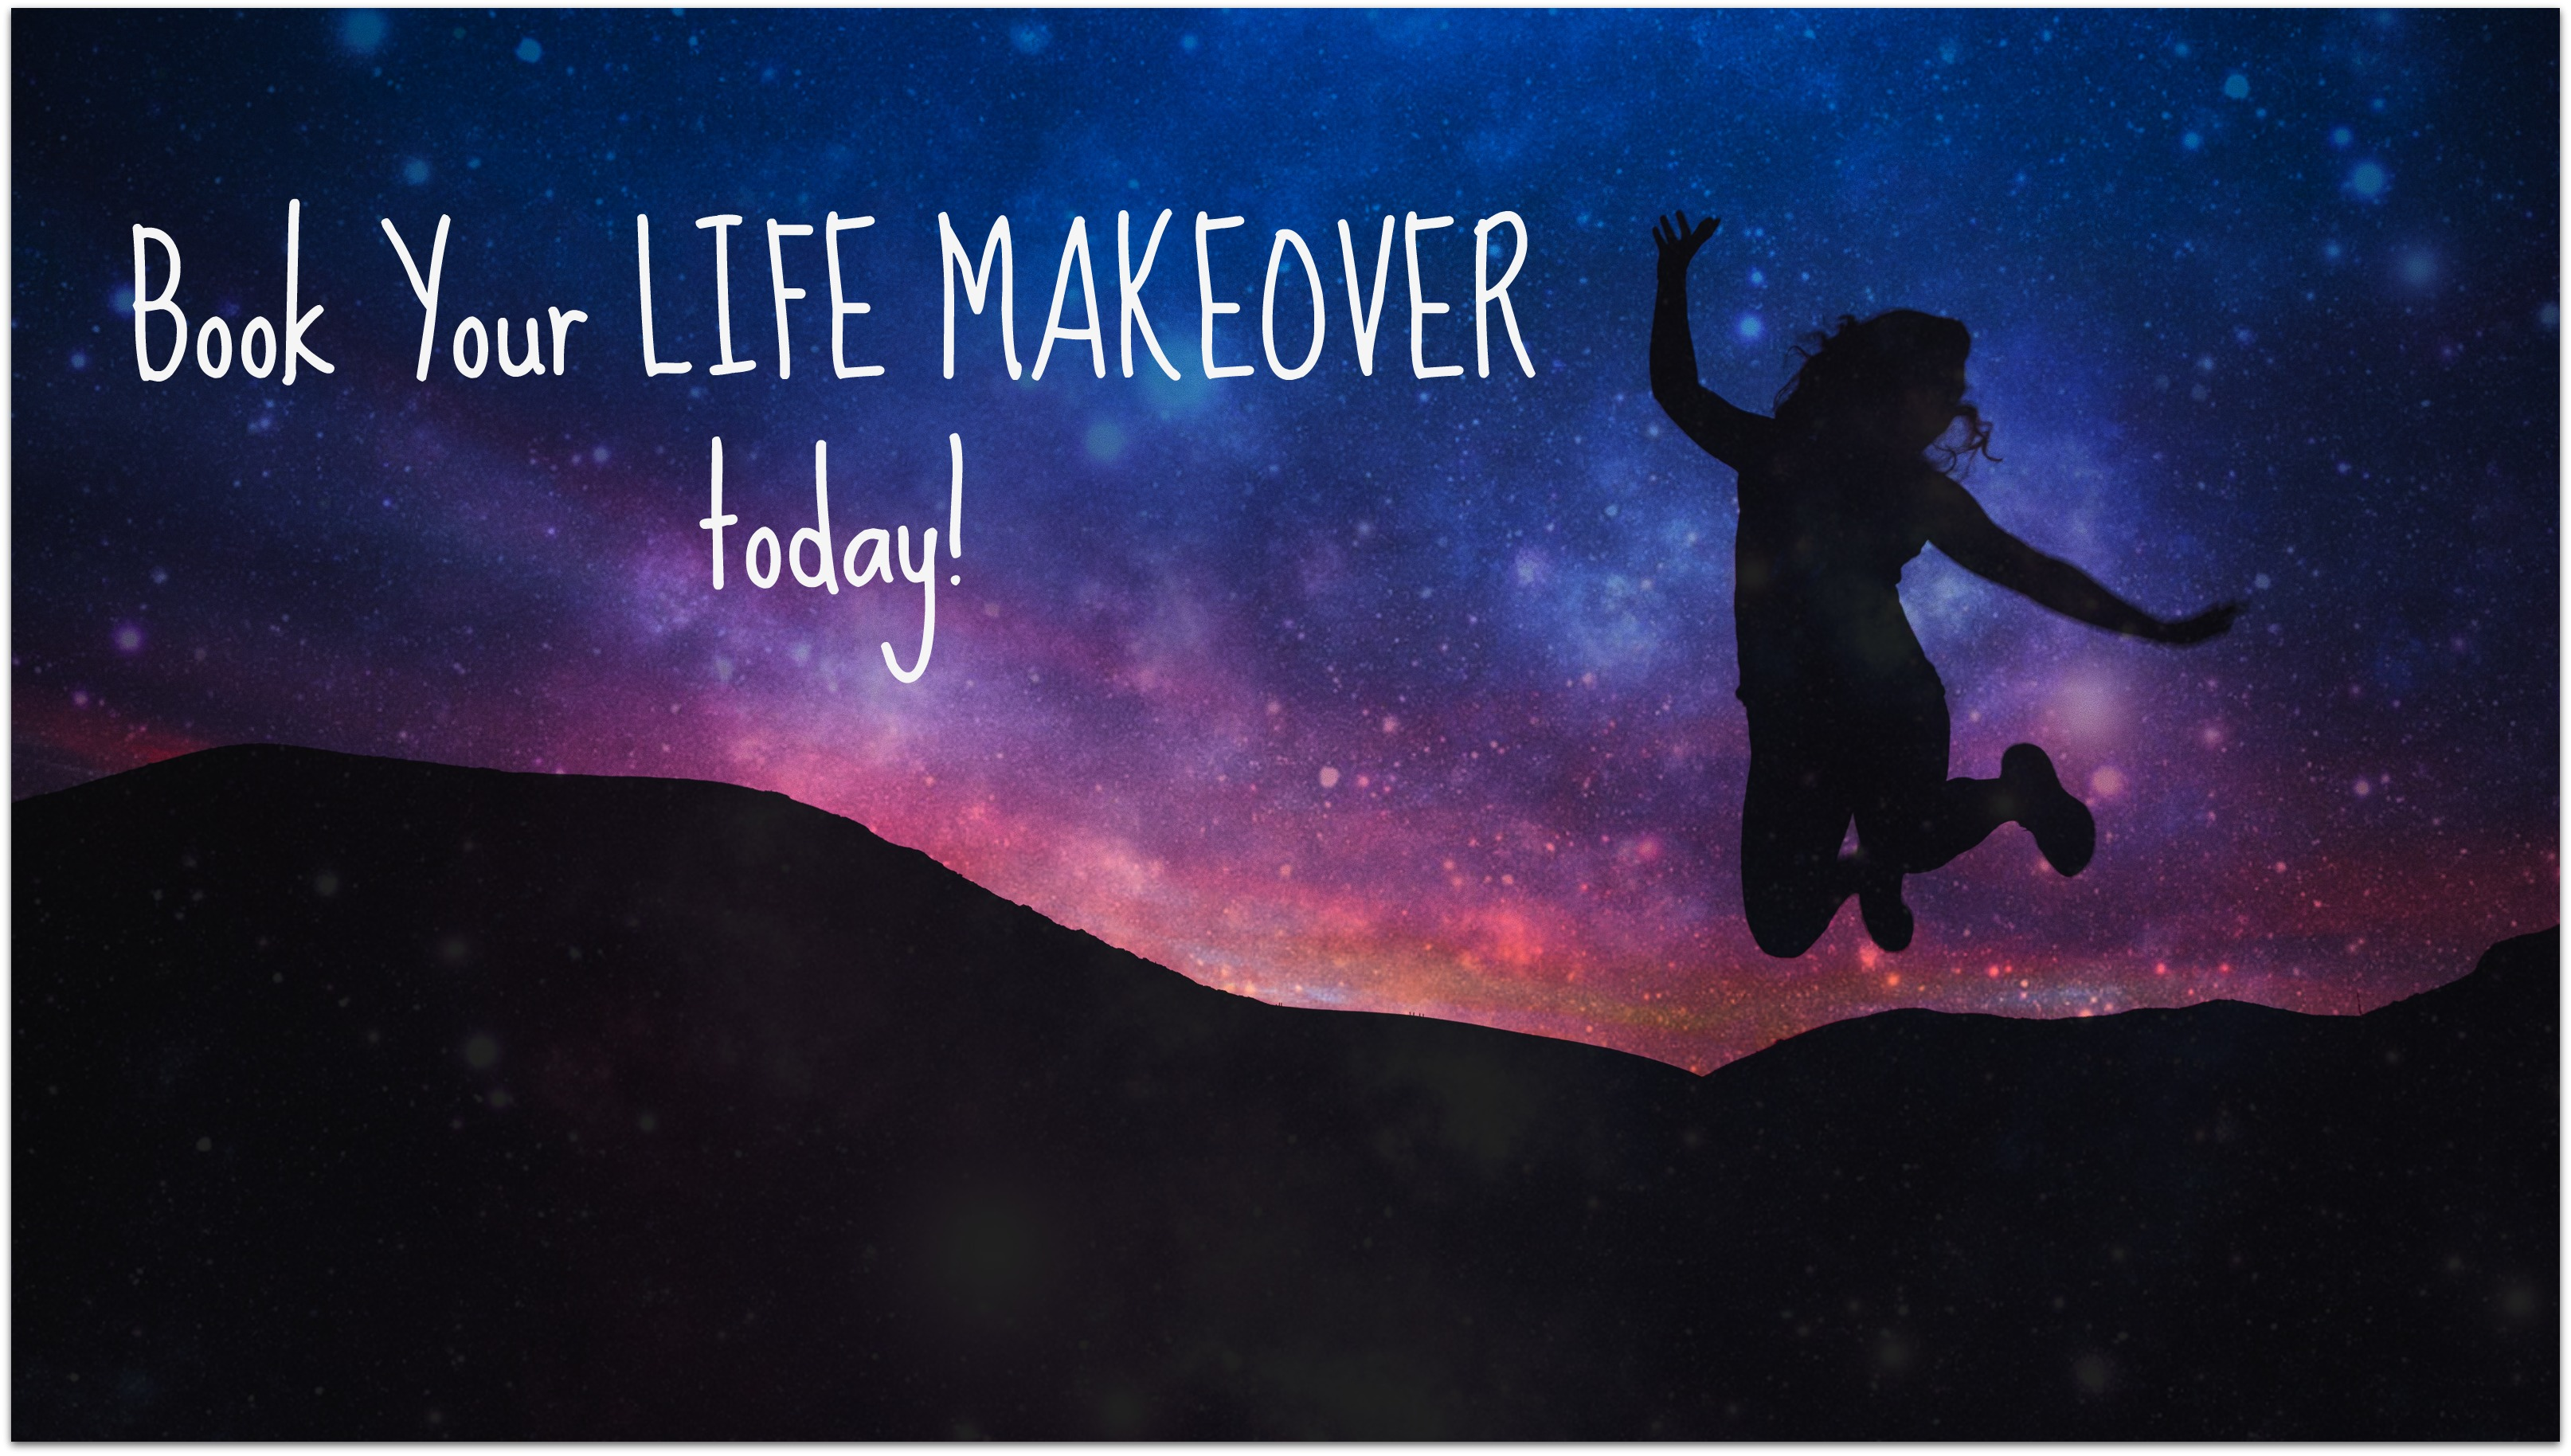 Life Makeover Image-Edited